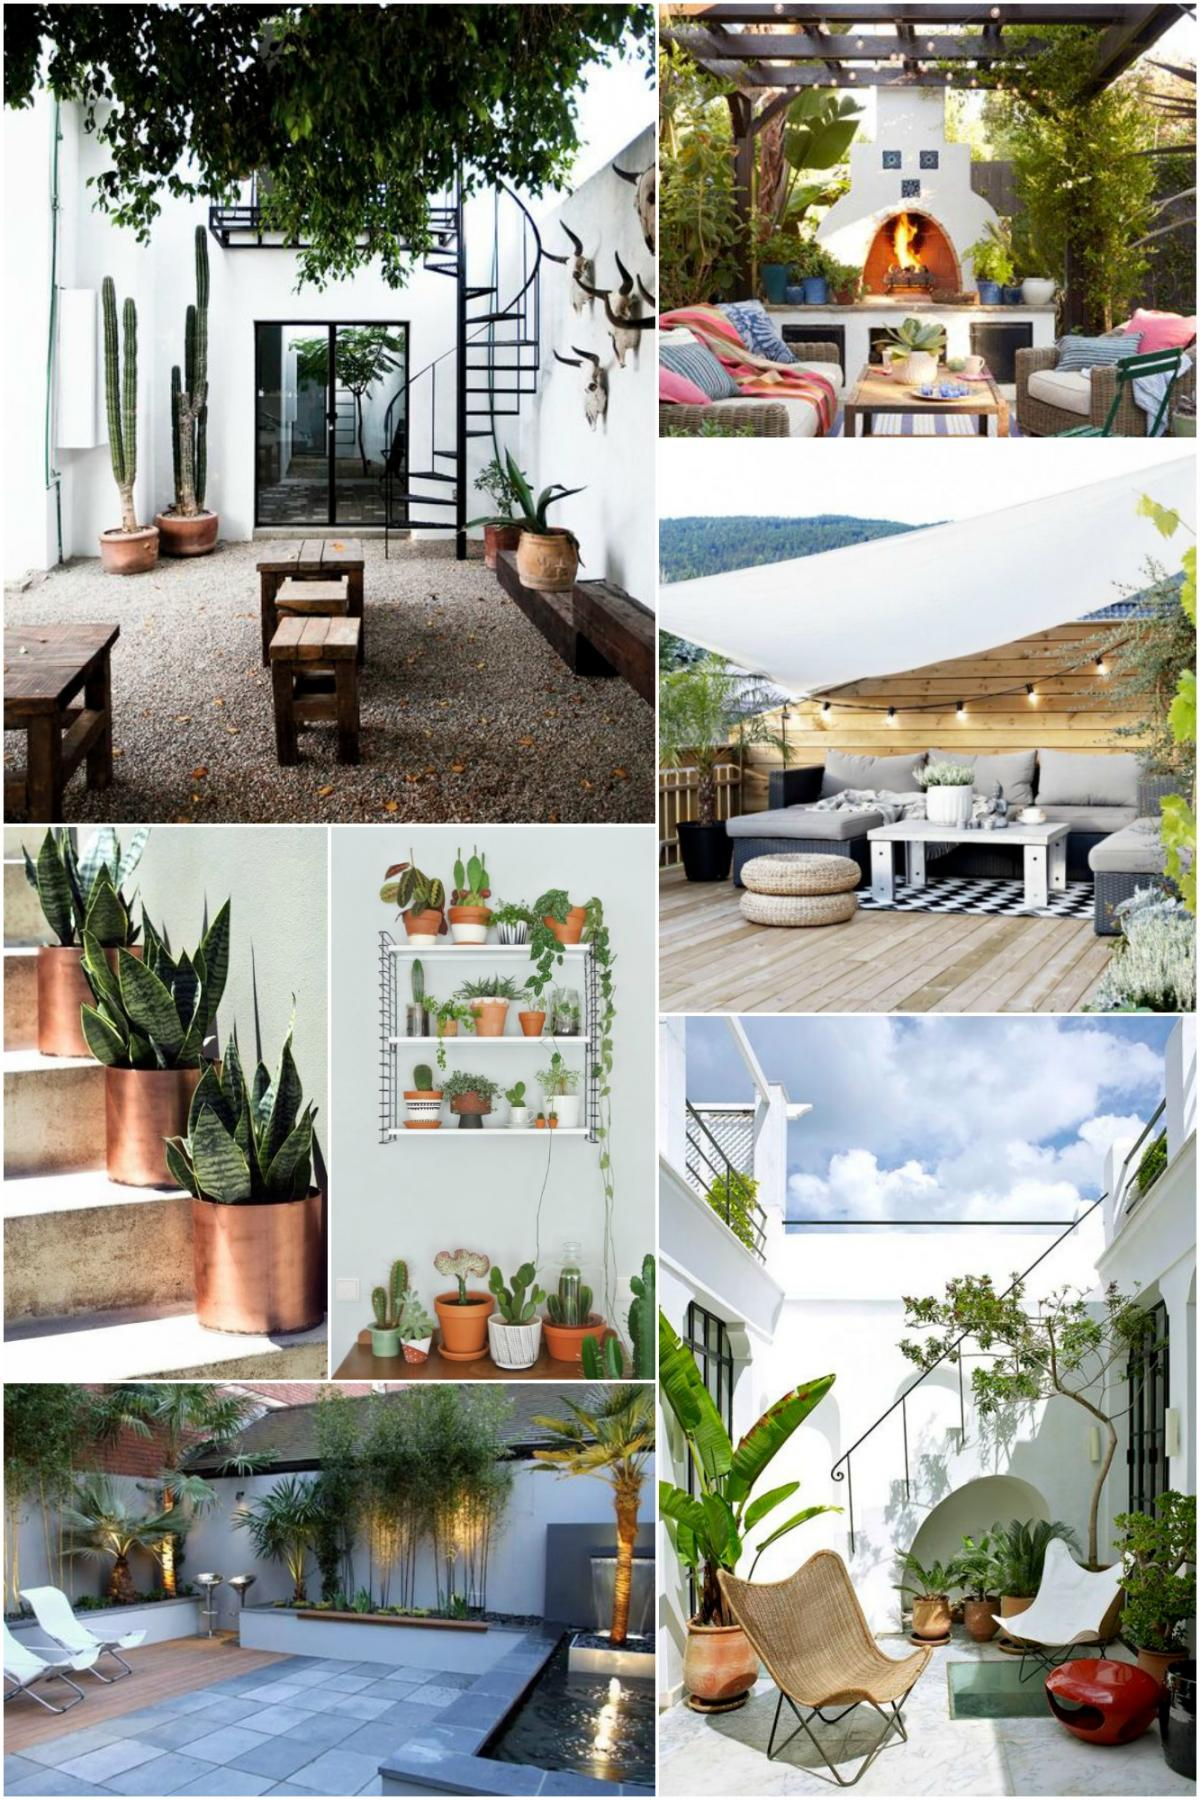 Home Trend- LA Cool Garden Mood Board